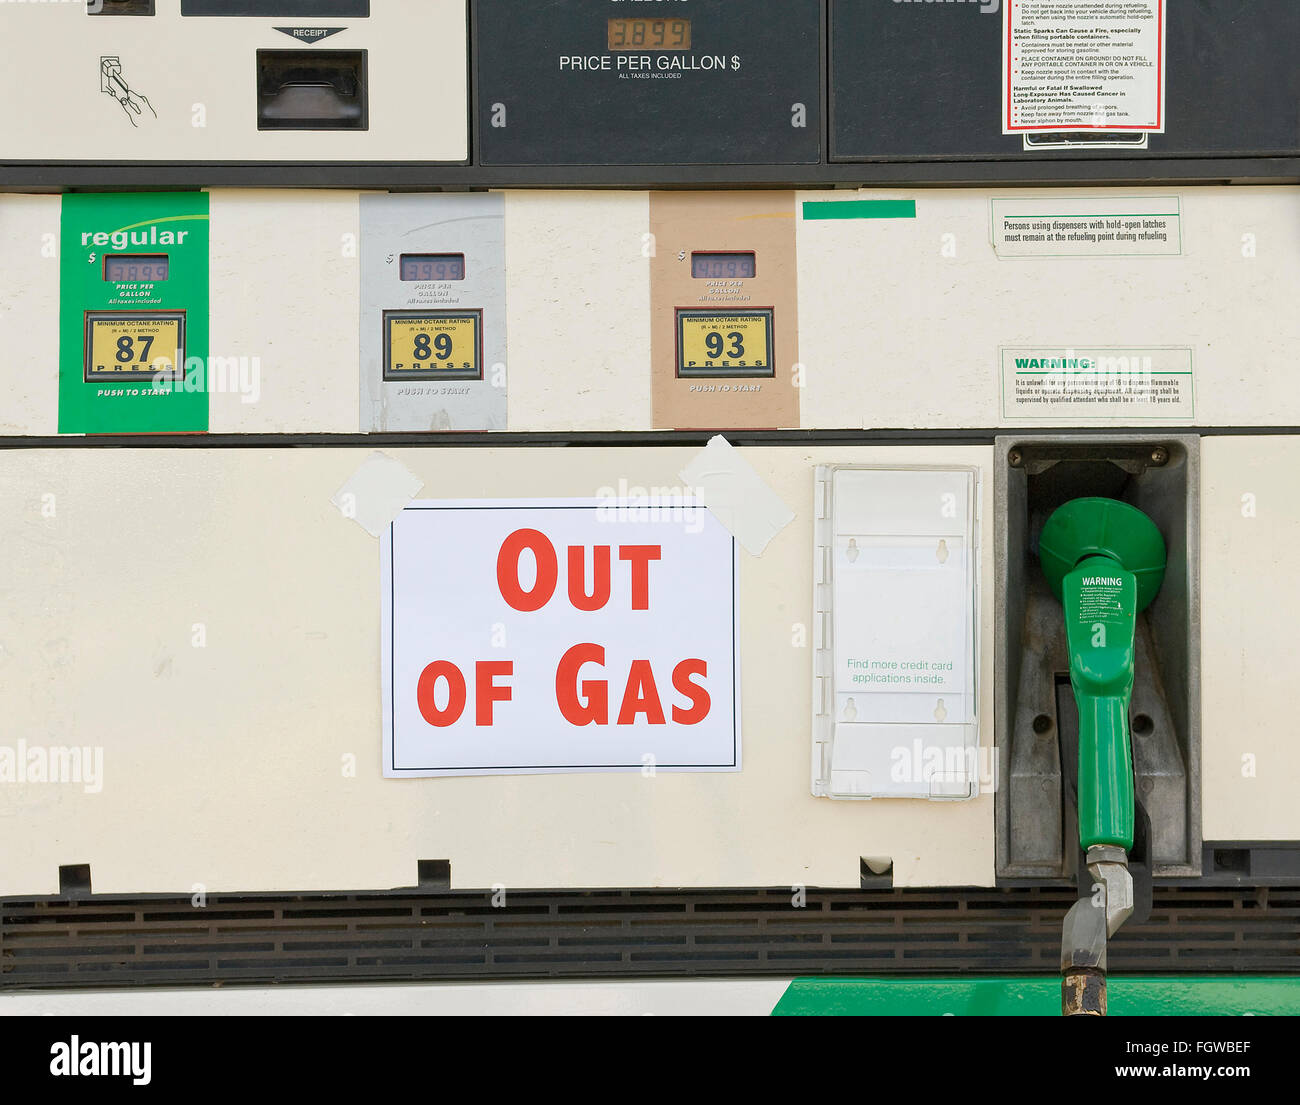 Out of Gasoline - Stock Image